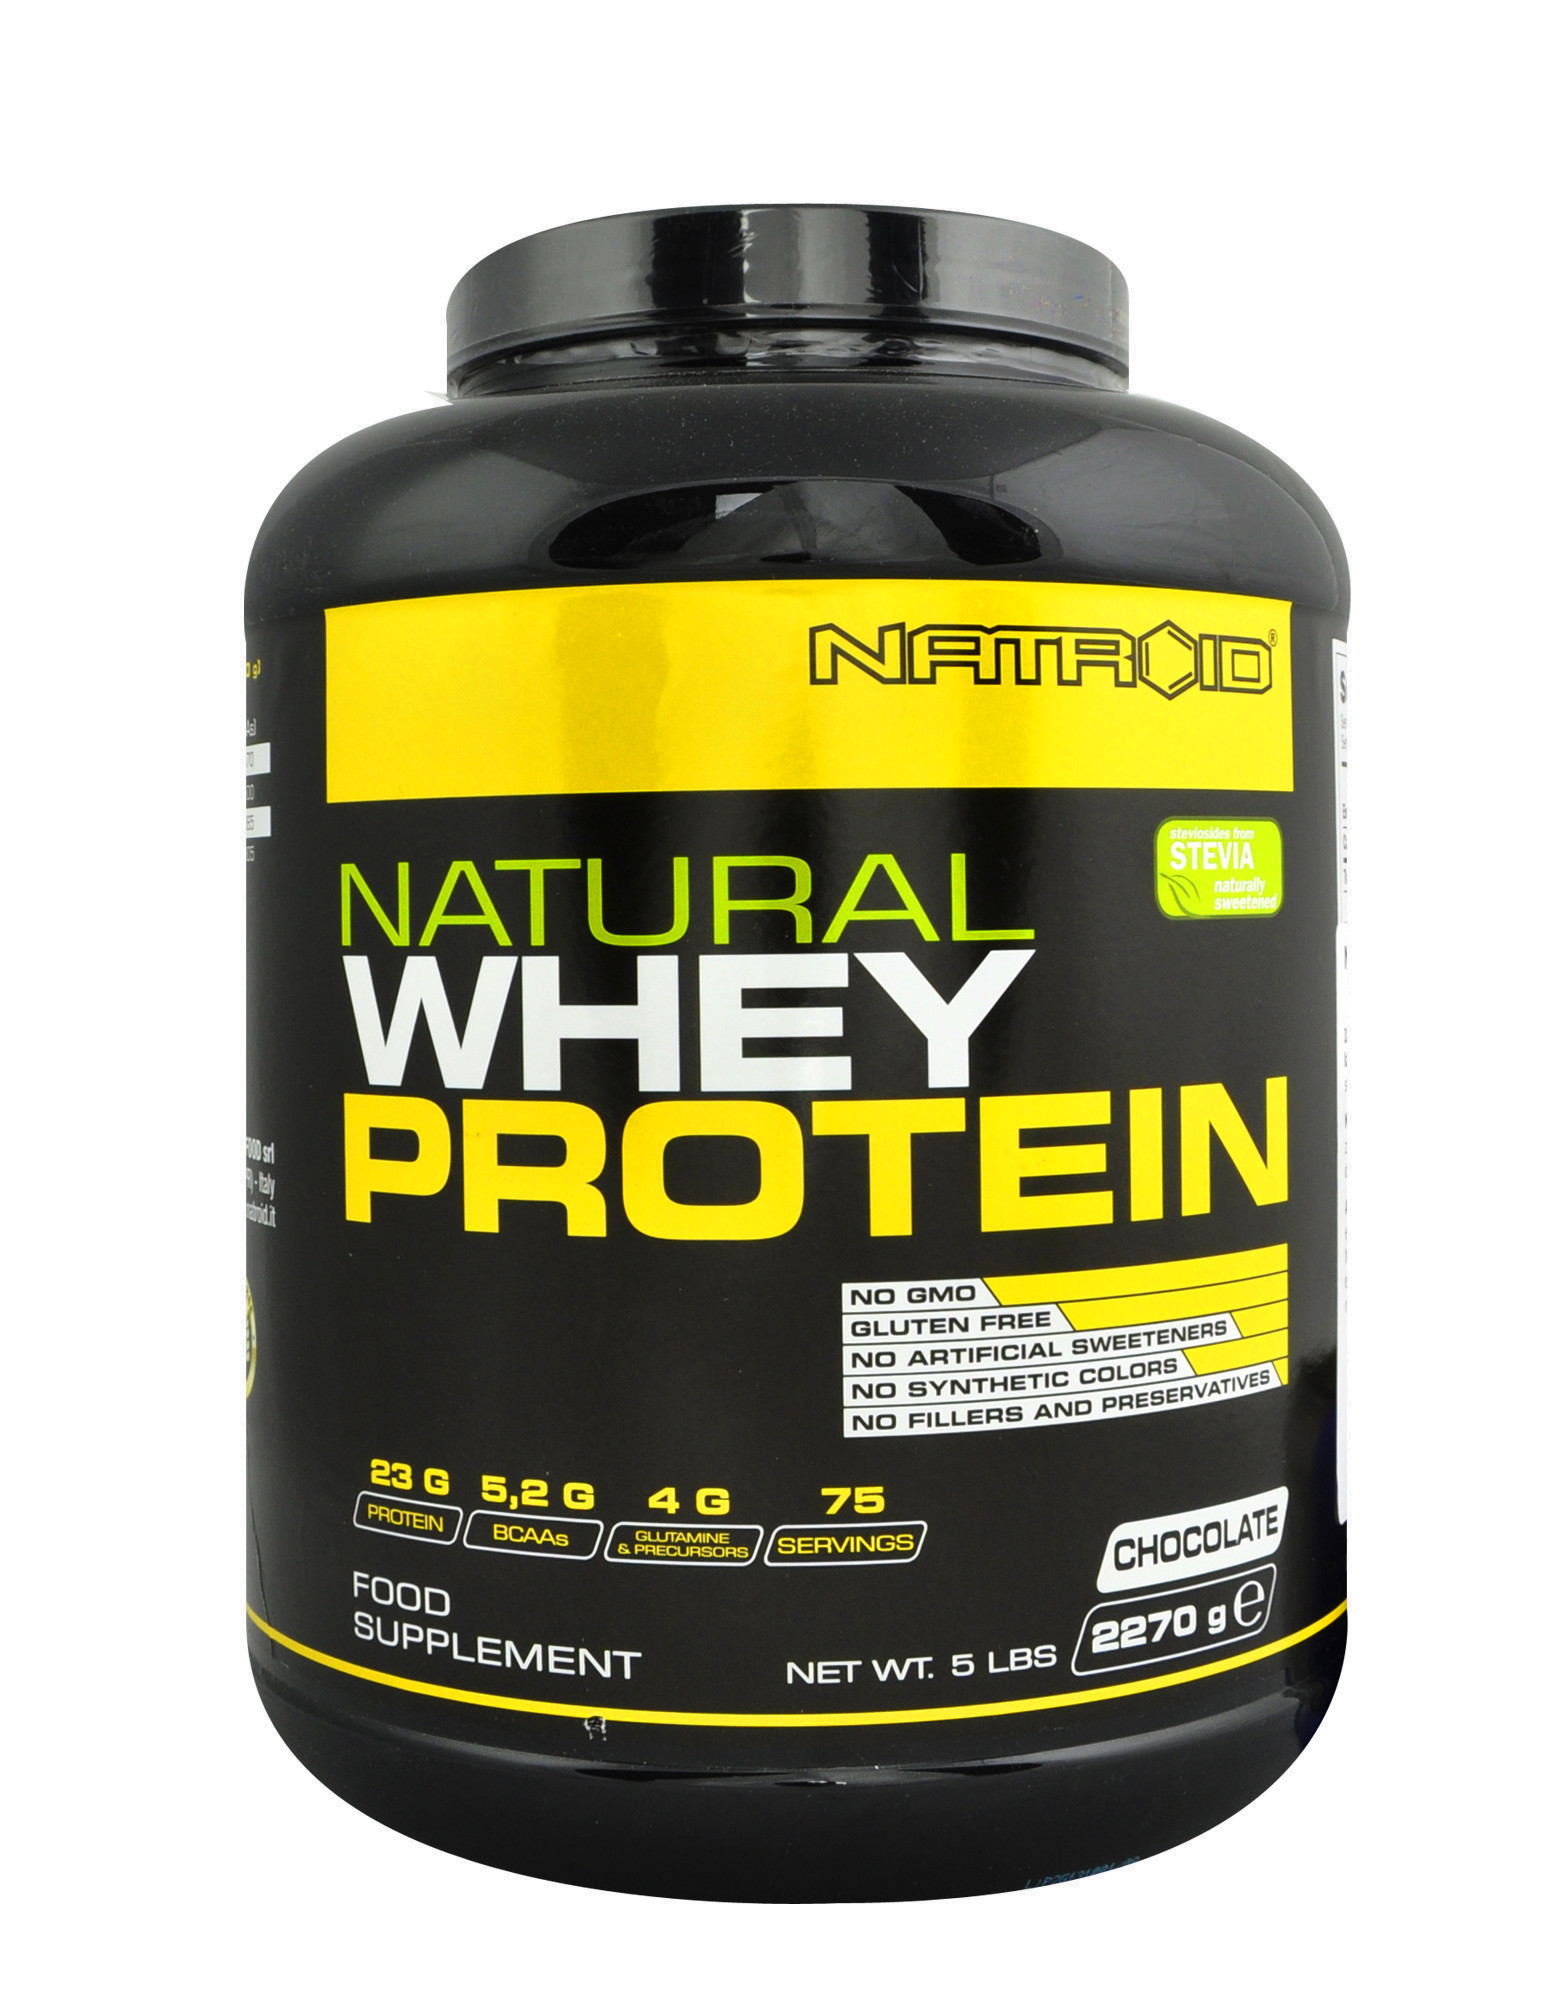 natural whey protein by natroid 2270 grams. Black Bedroom Furniture Sets. Home Design Ideas